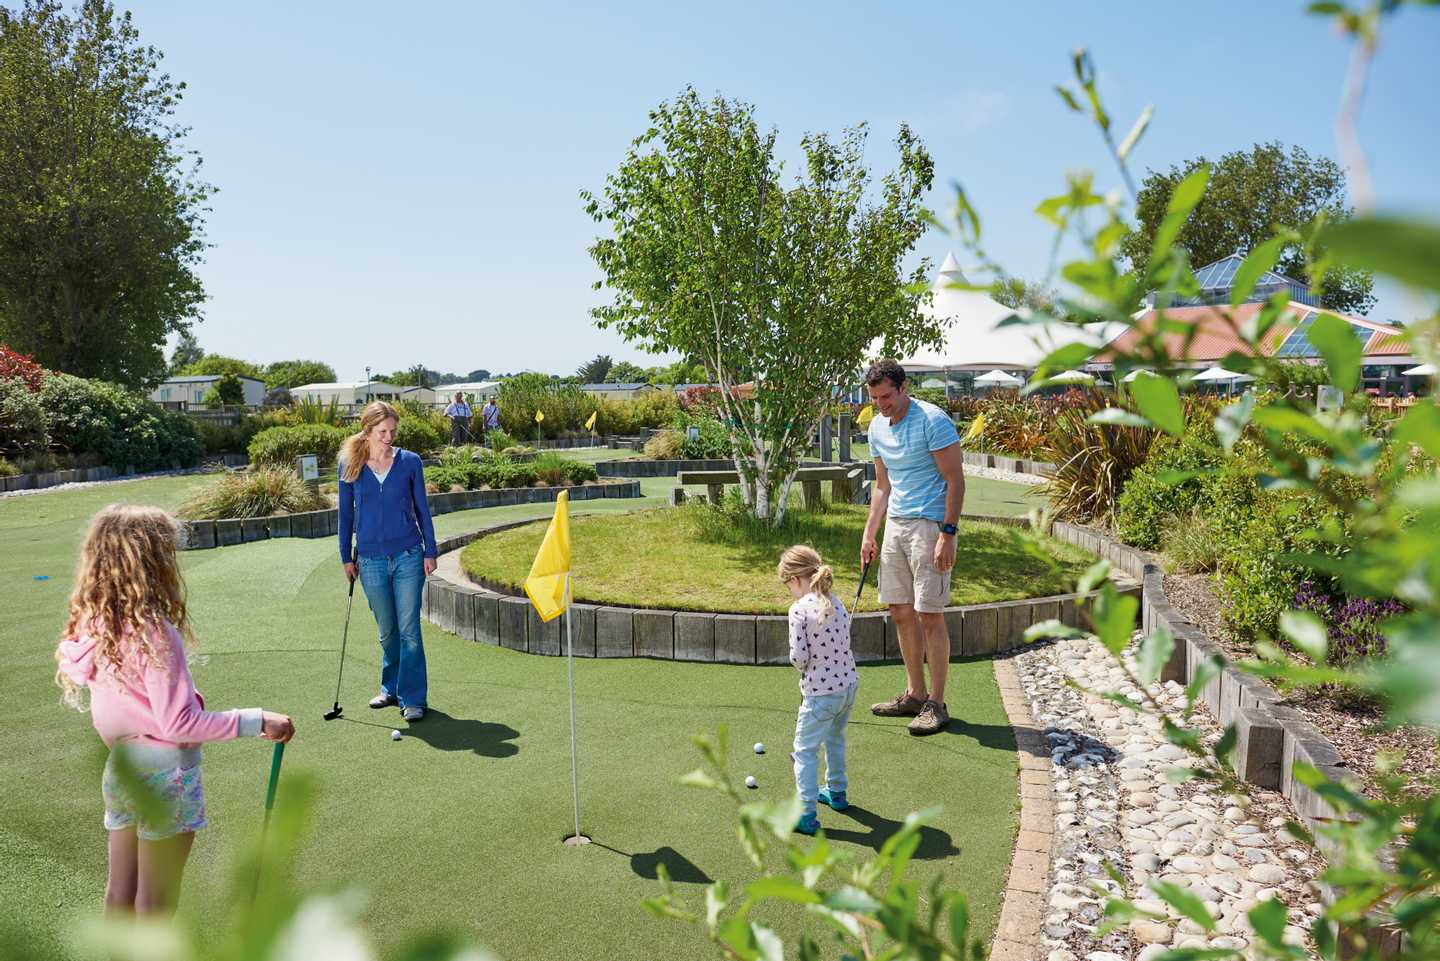 Family playing on the adventure golf course at Hopton Holiday Village